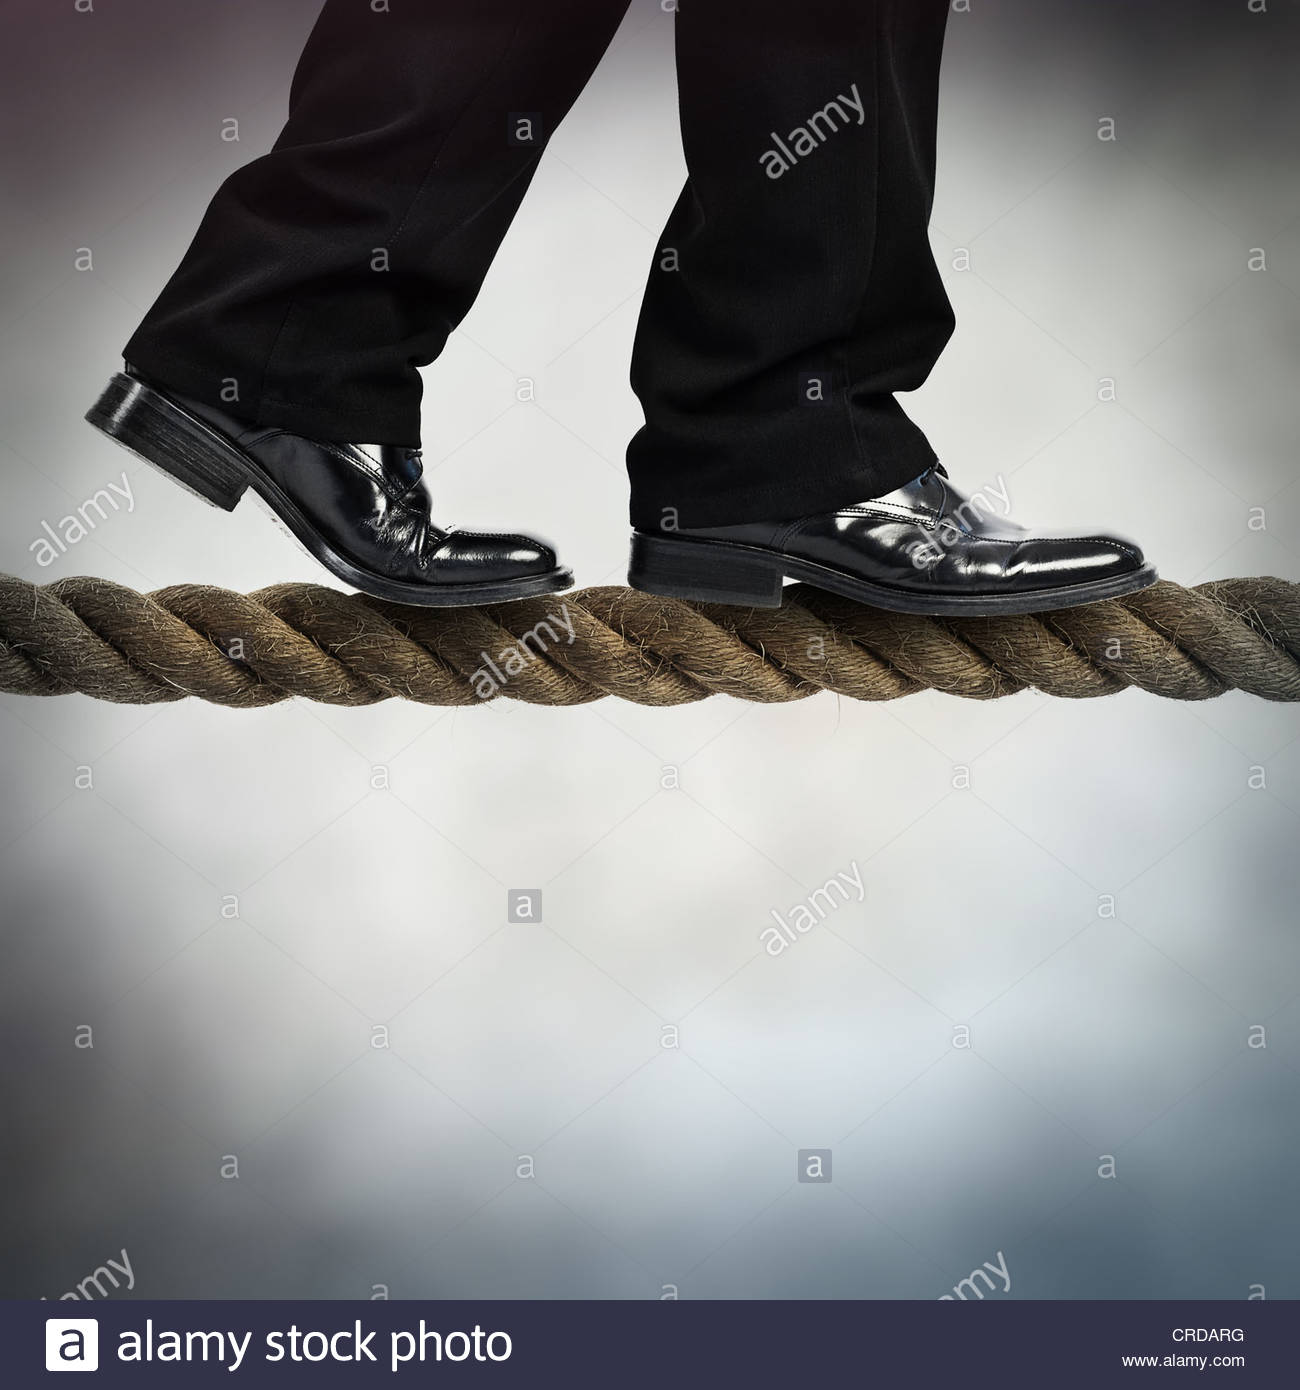 tightrope walk - Stock Image